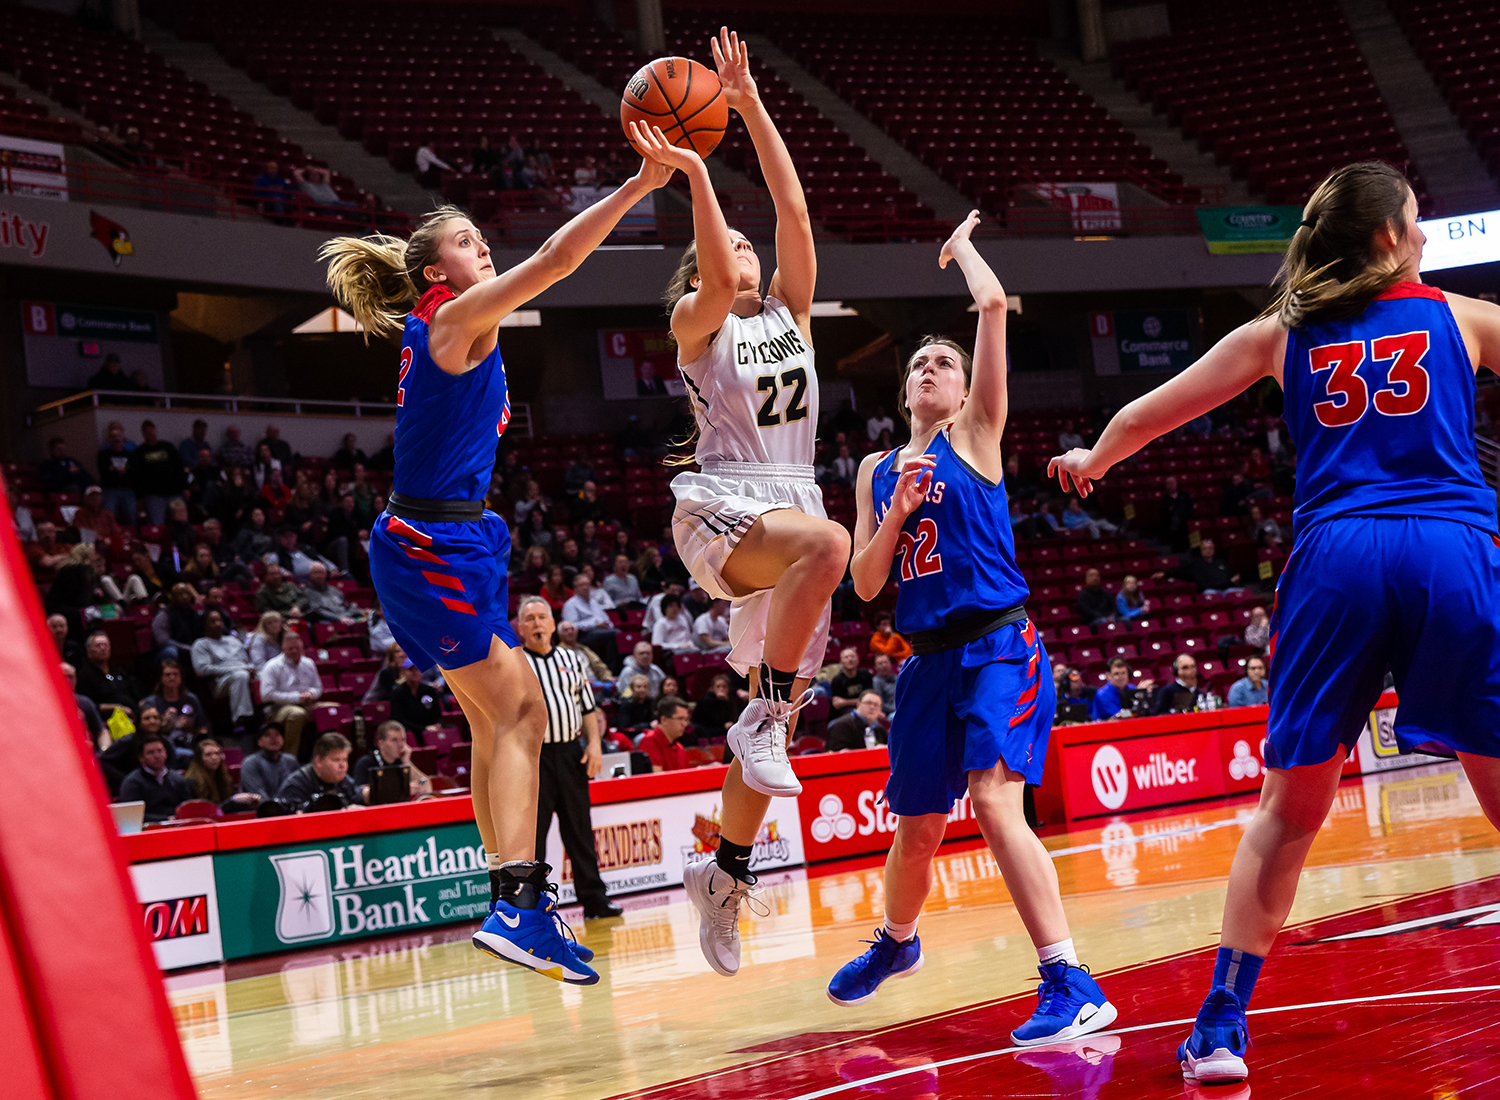 Glen Ellyn Glenbard South's Maggie Bair (42) blocks a shot from Sacred Heart-Griffin's Maggie Gilmore (22) in the fourth quarter during the IHSA Class 3A State Tournament semifinals at Redbird Arena, Friday, March 1, 2019, in Normal, Ill. [Justin L. Fowler/The State Journal-Register]